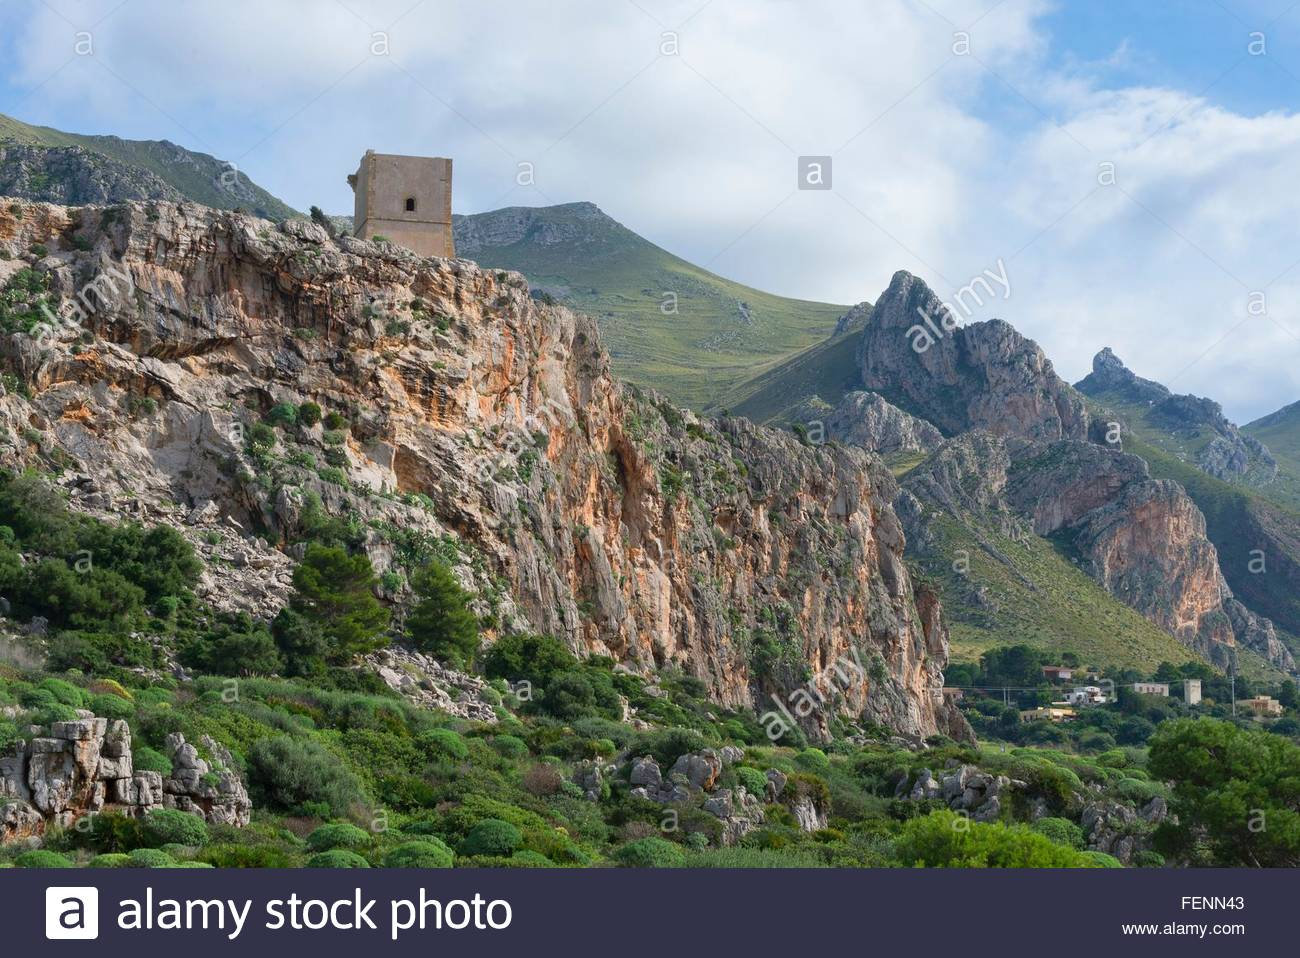 Portrait de mountain tower, Macari, San Vito Lo Capo, Sicile, Italie Photo Stock